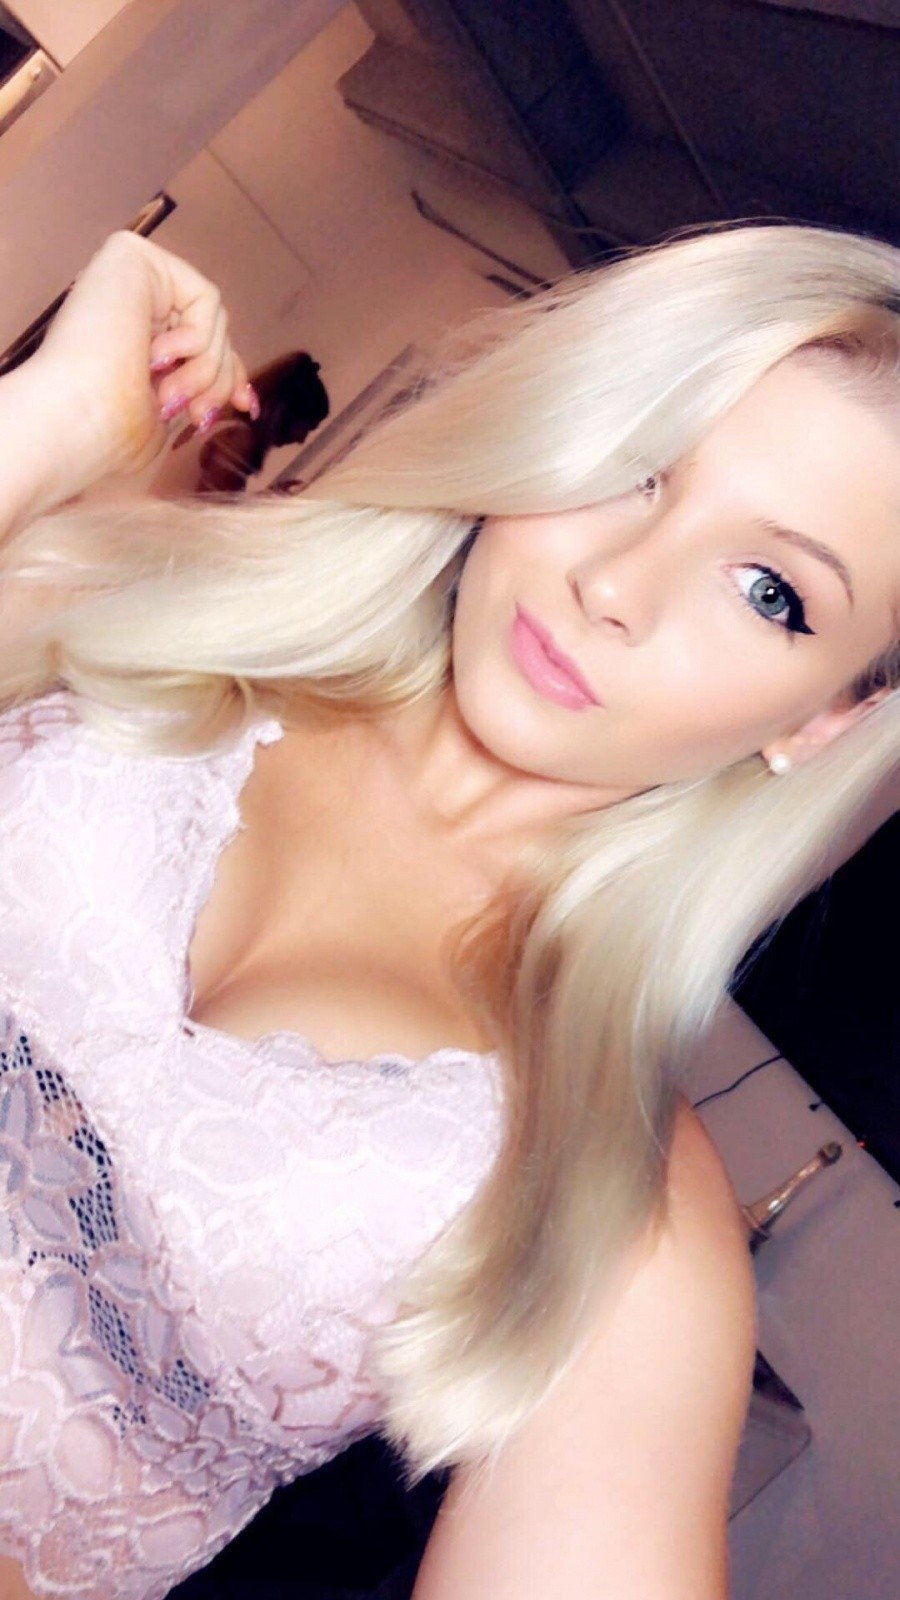 Lindsay Capuano Onlyfans Snapchat Leaked Video 31x